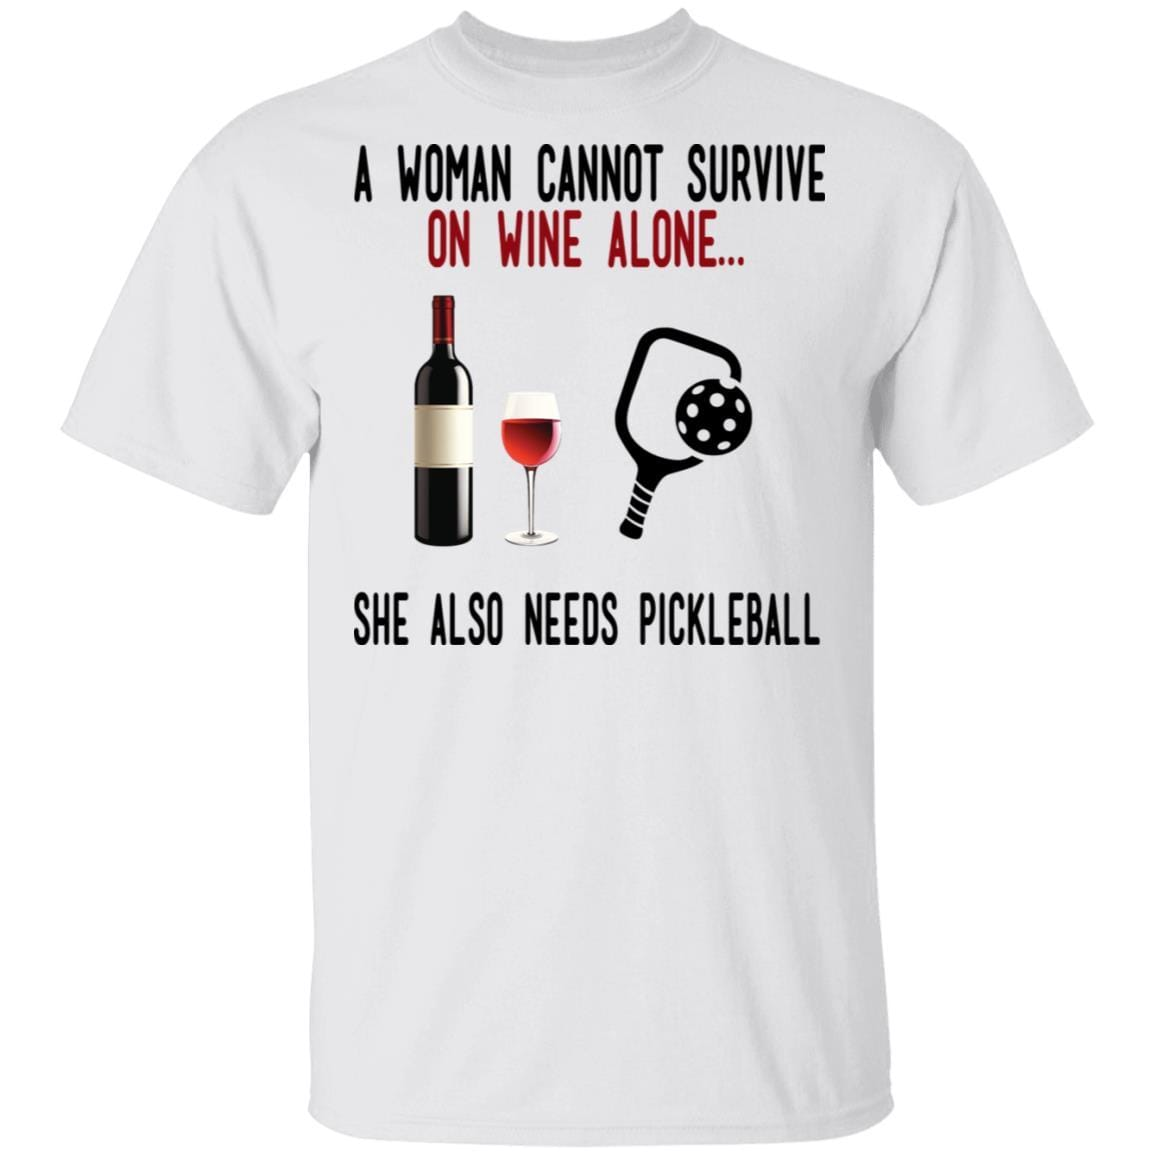 A Woman Cannot Survive On Wine Alone She Also Needs Pickleball T-Shirts, Hoodies 1049-9974-86569608-48300 - Tee Ript